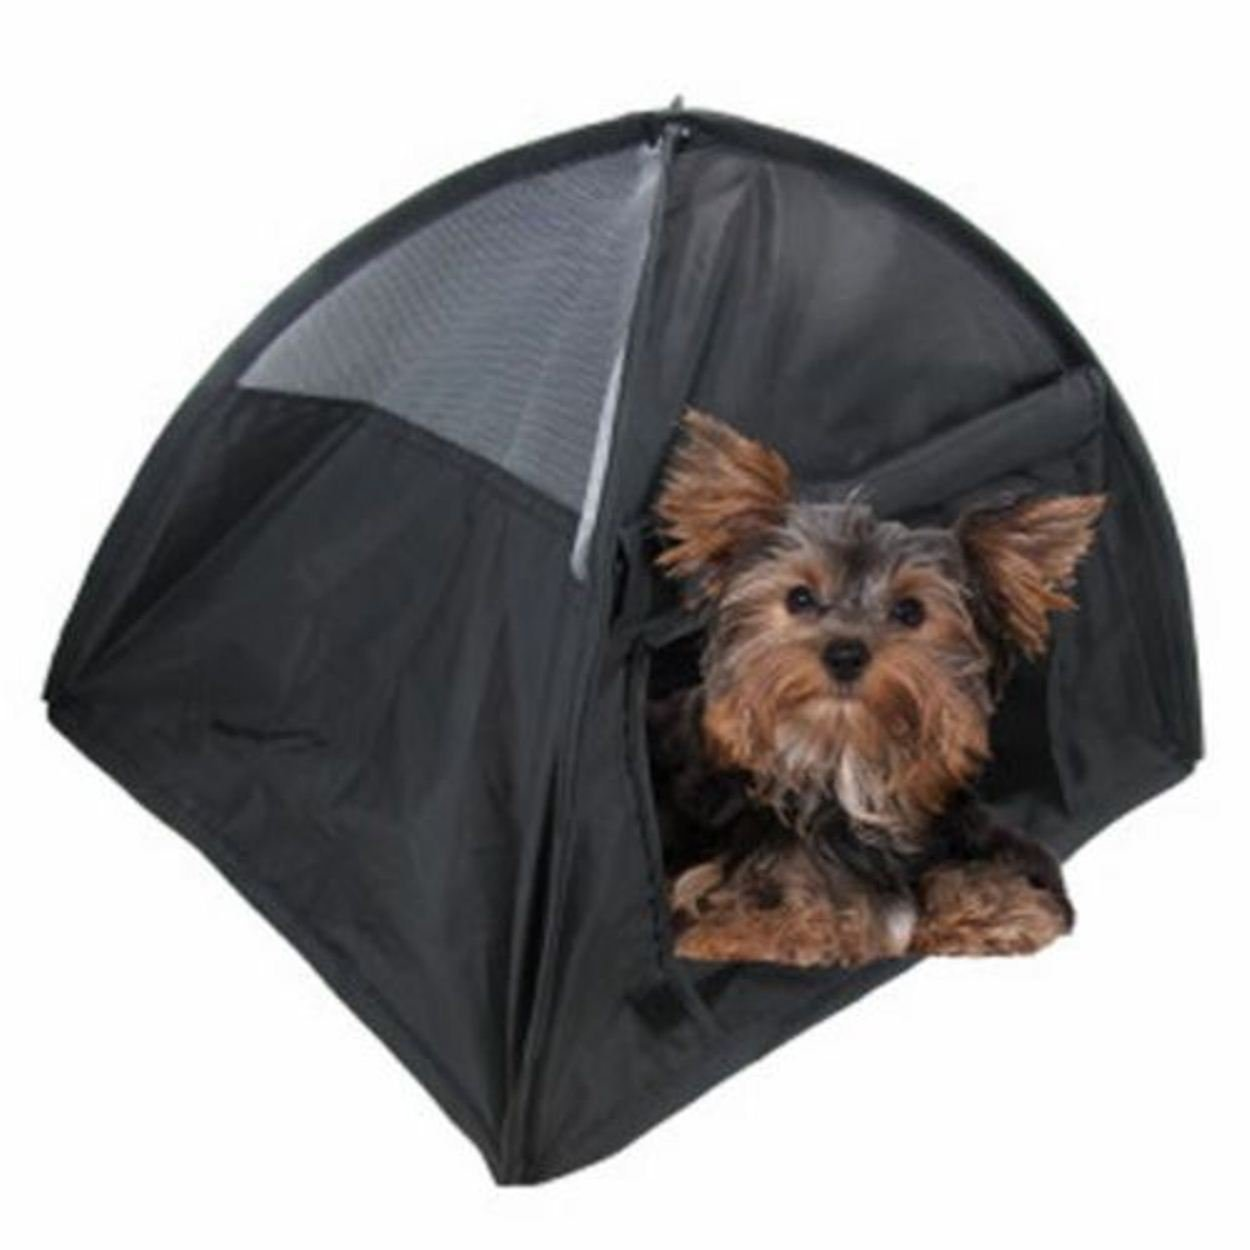 Small Dog Tent Bed